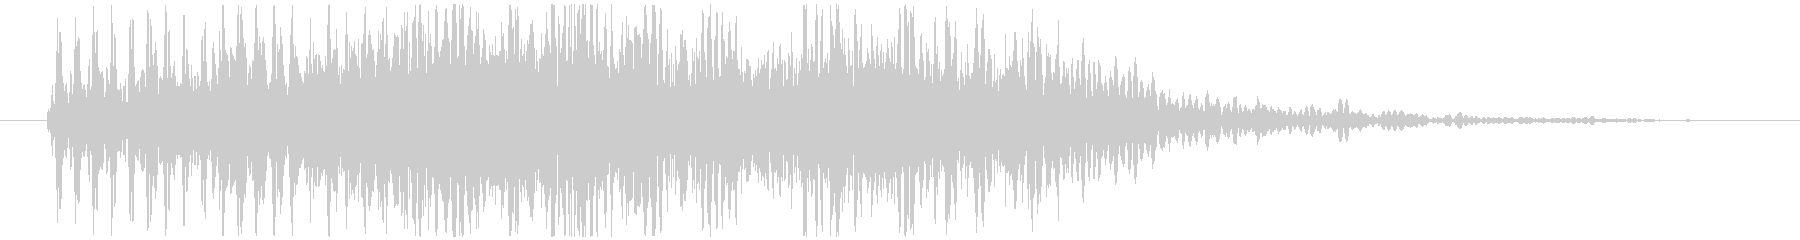 Wild and powerful Logo's unreproduced waveform